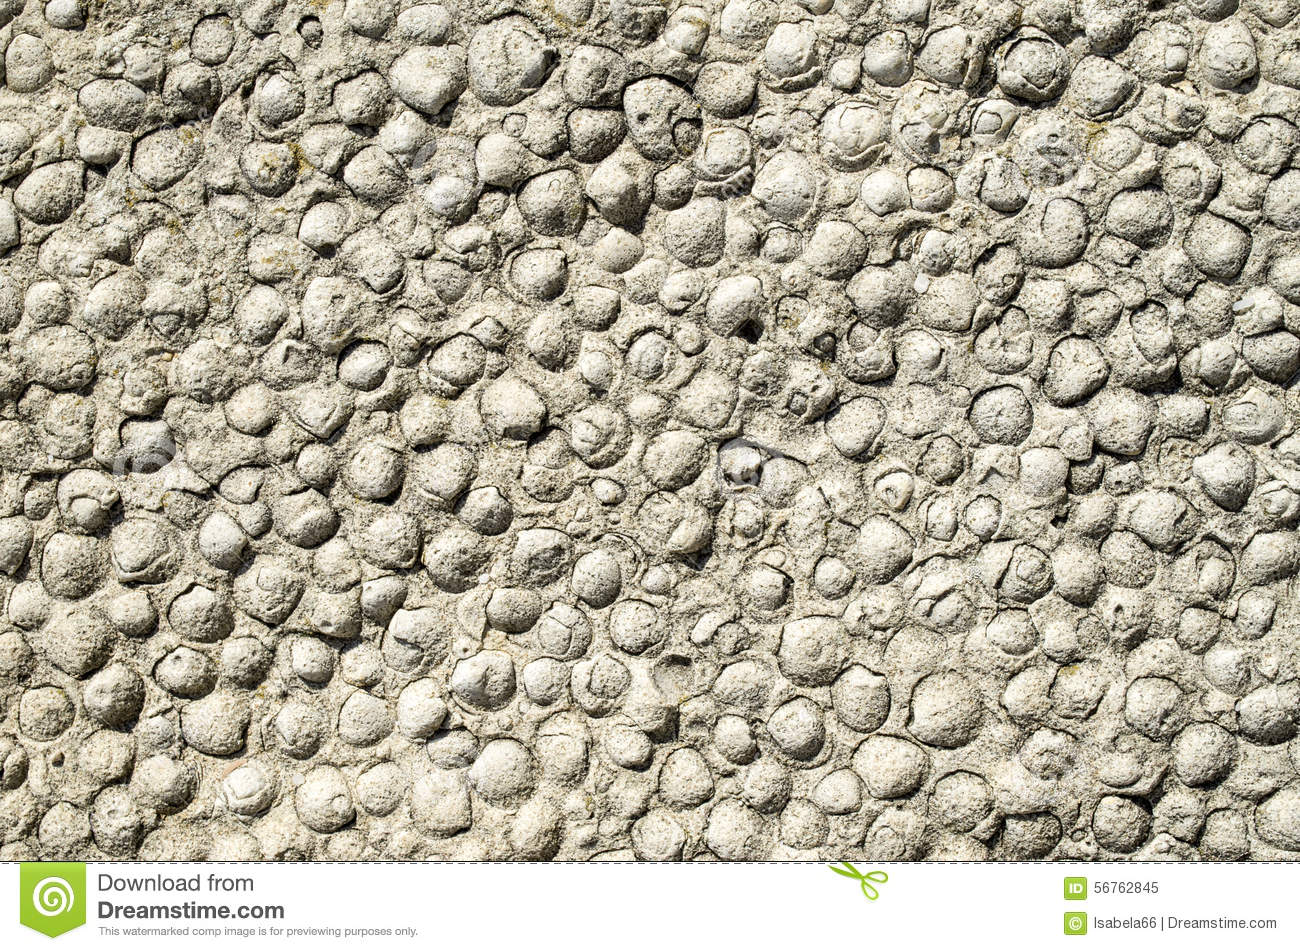 Sediment Rock With Fossilized Seashells On The Beach Stock Photo.